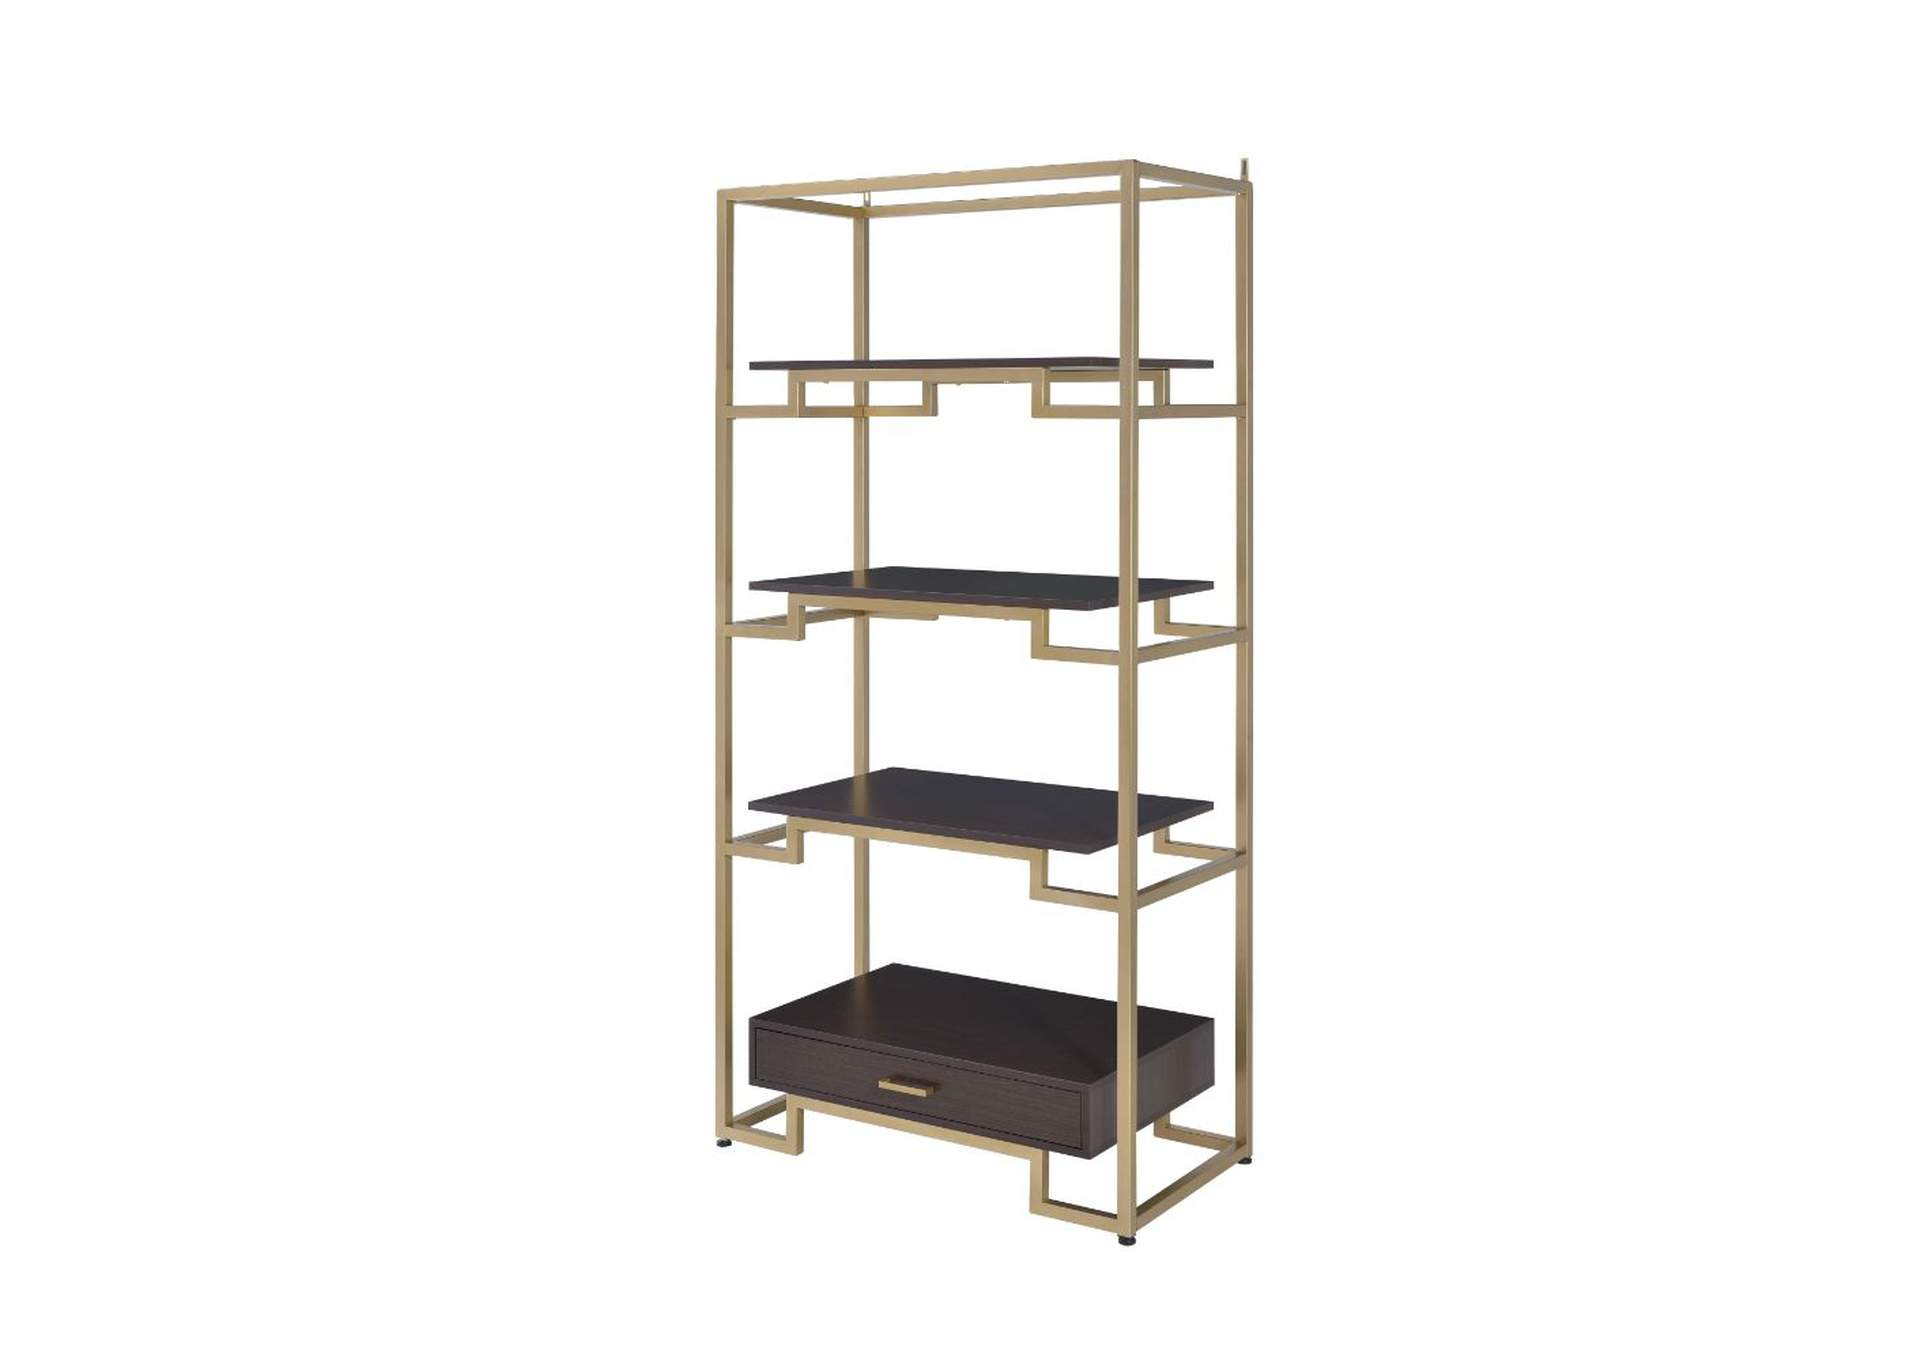 Yumia Gold Bookshelf,Acme